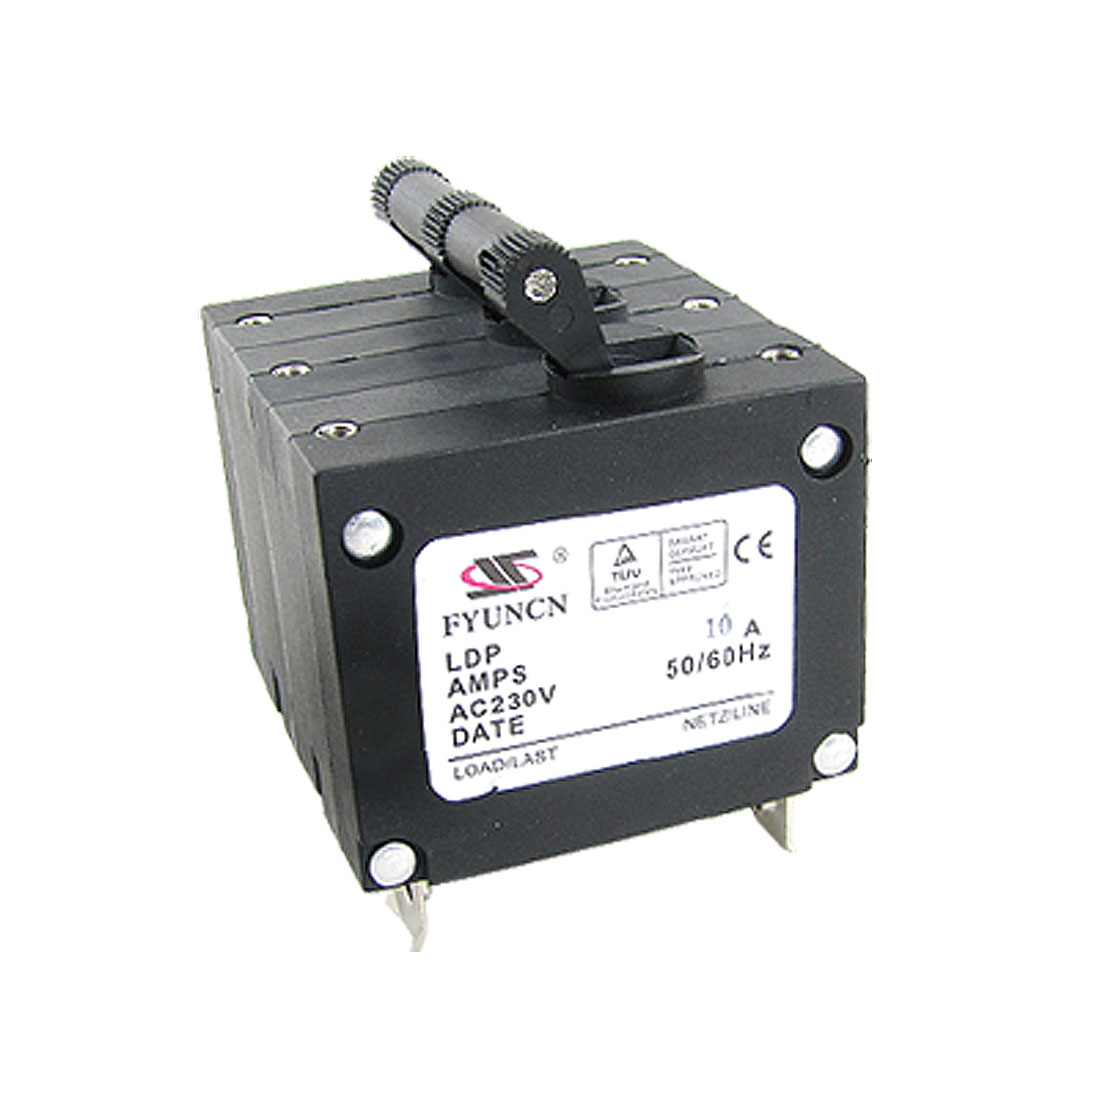 10A Rated Current AC230V 3P MCB Miniature Circuit Breaker